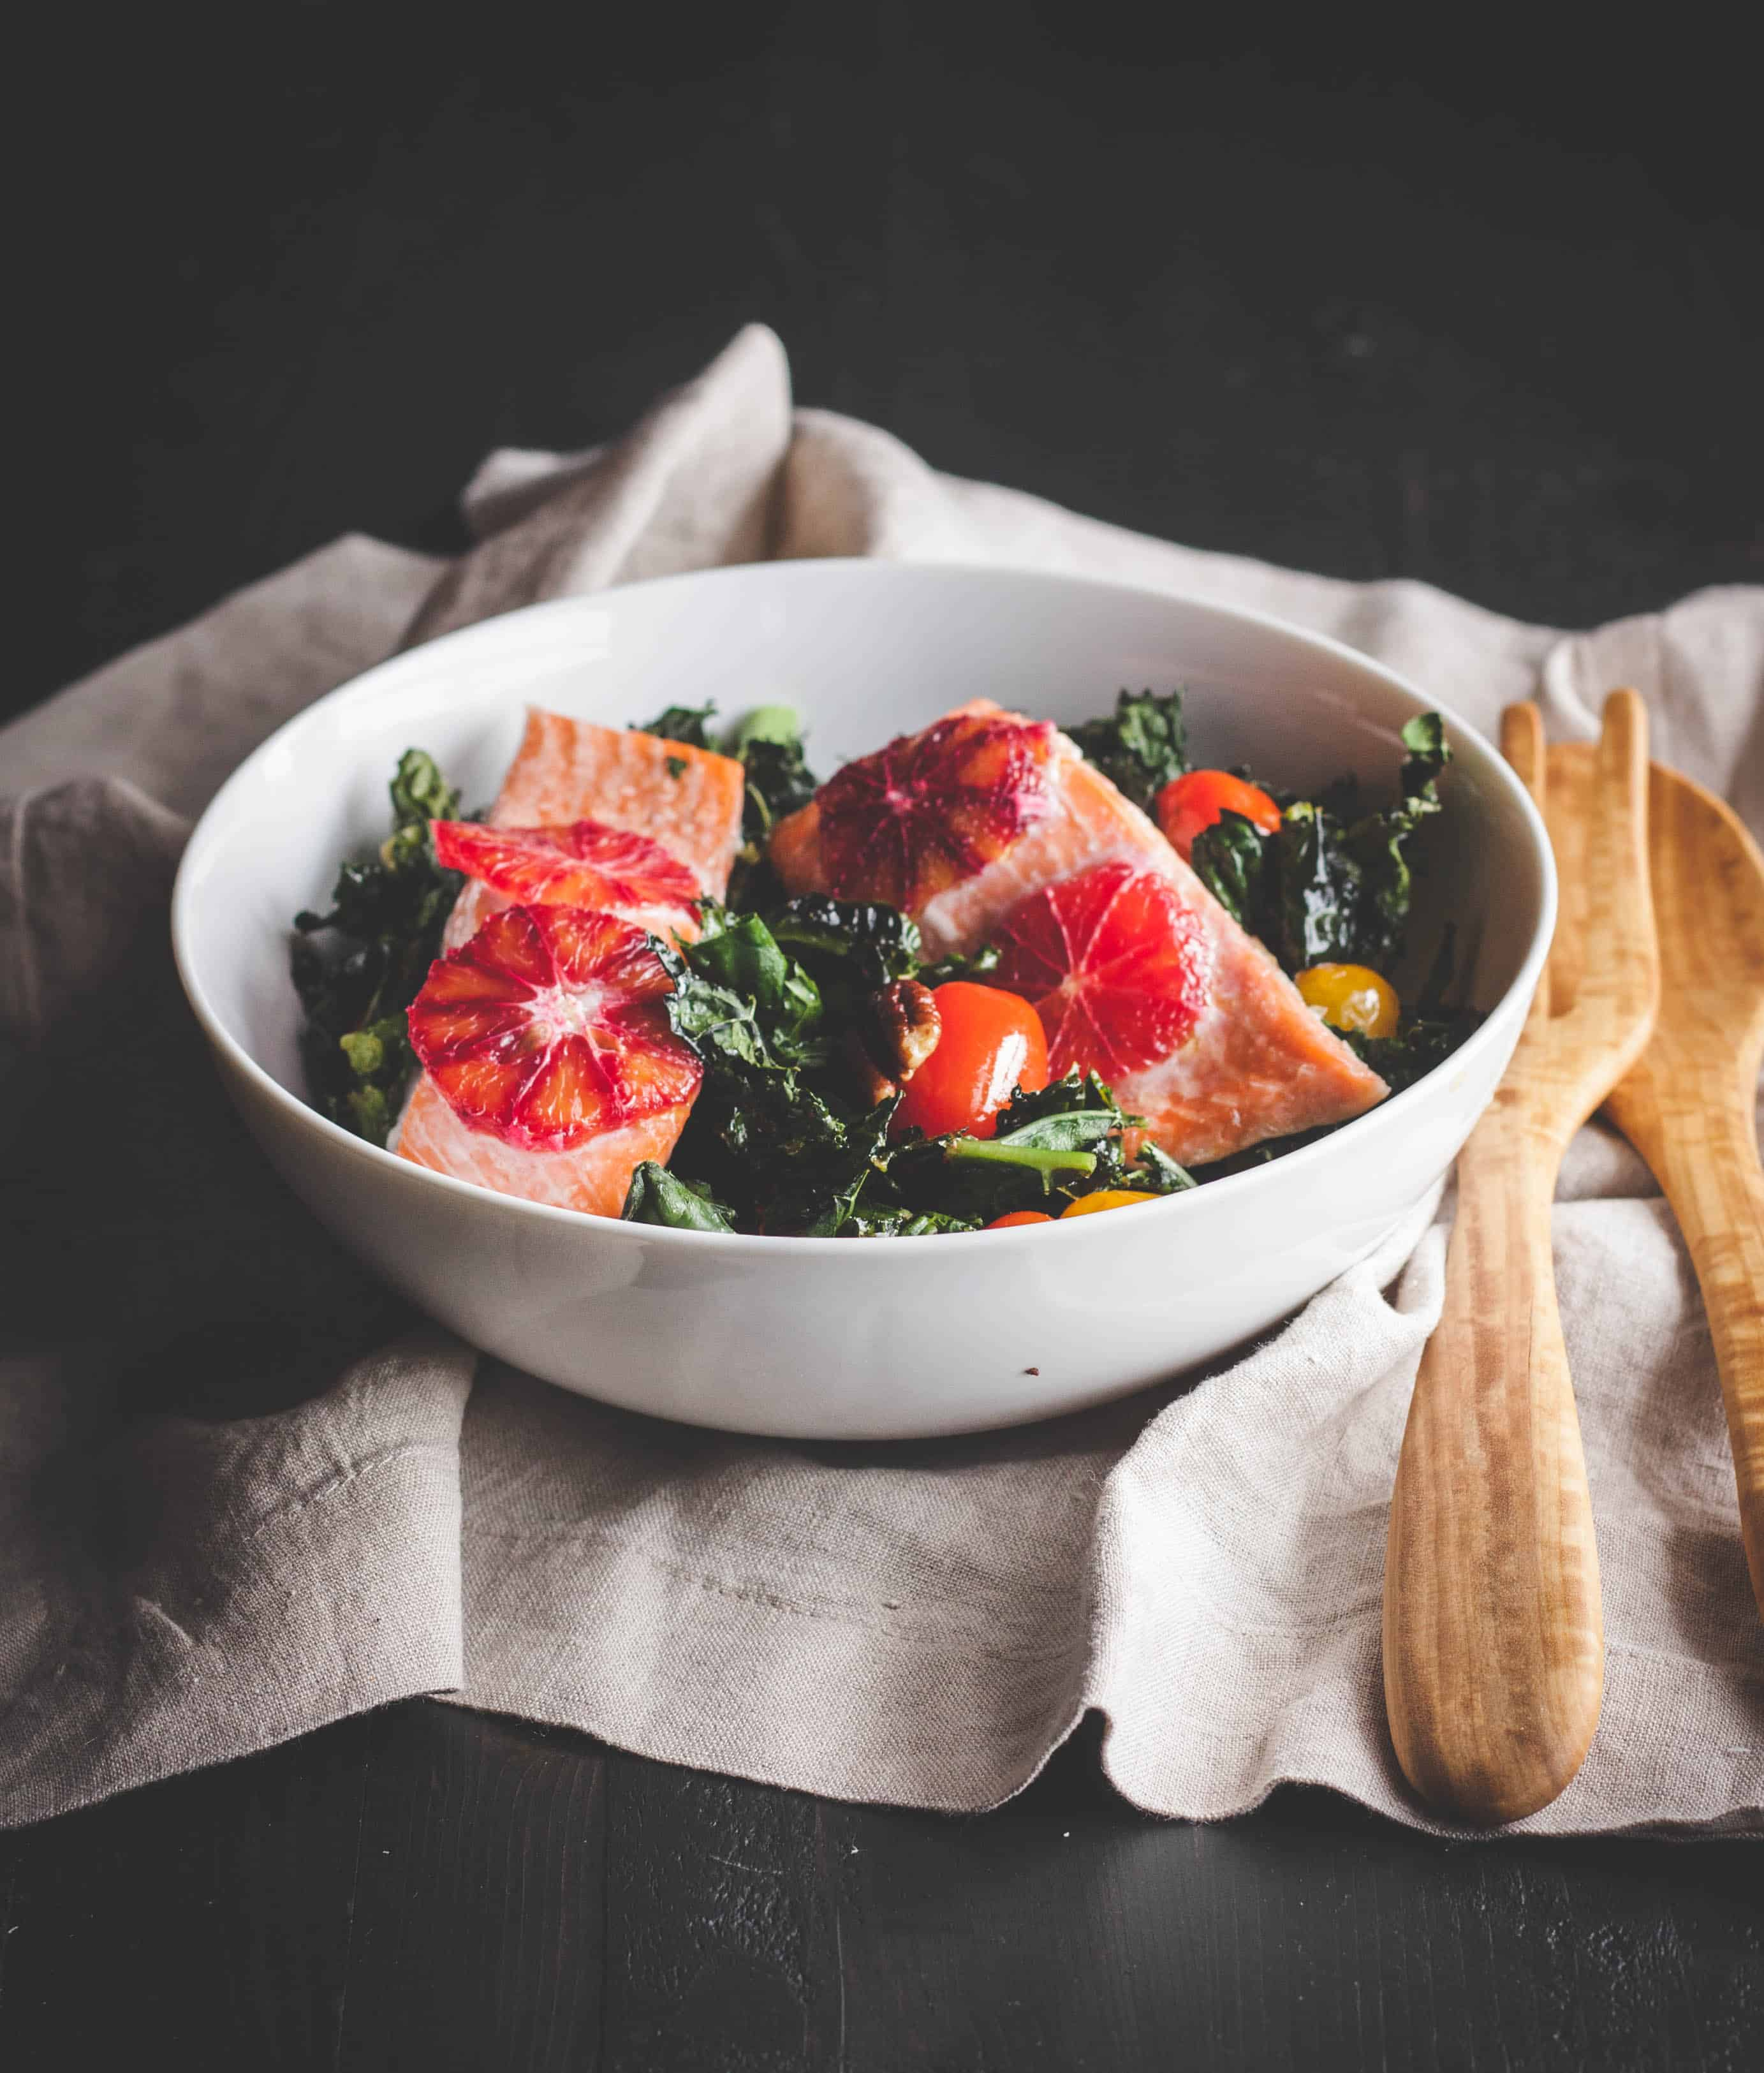 Roasted-Kale-and-Salmon-Detox-salad-with blood oranges